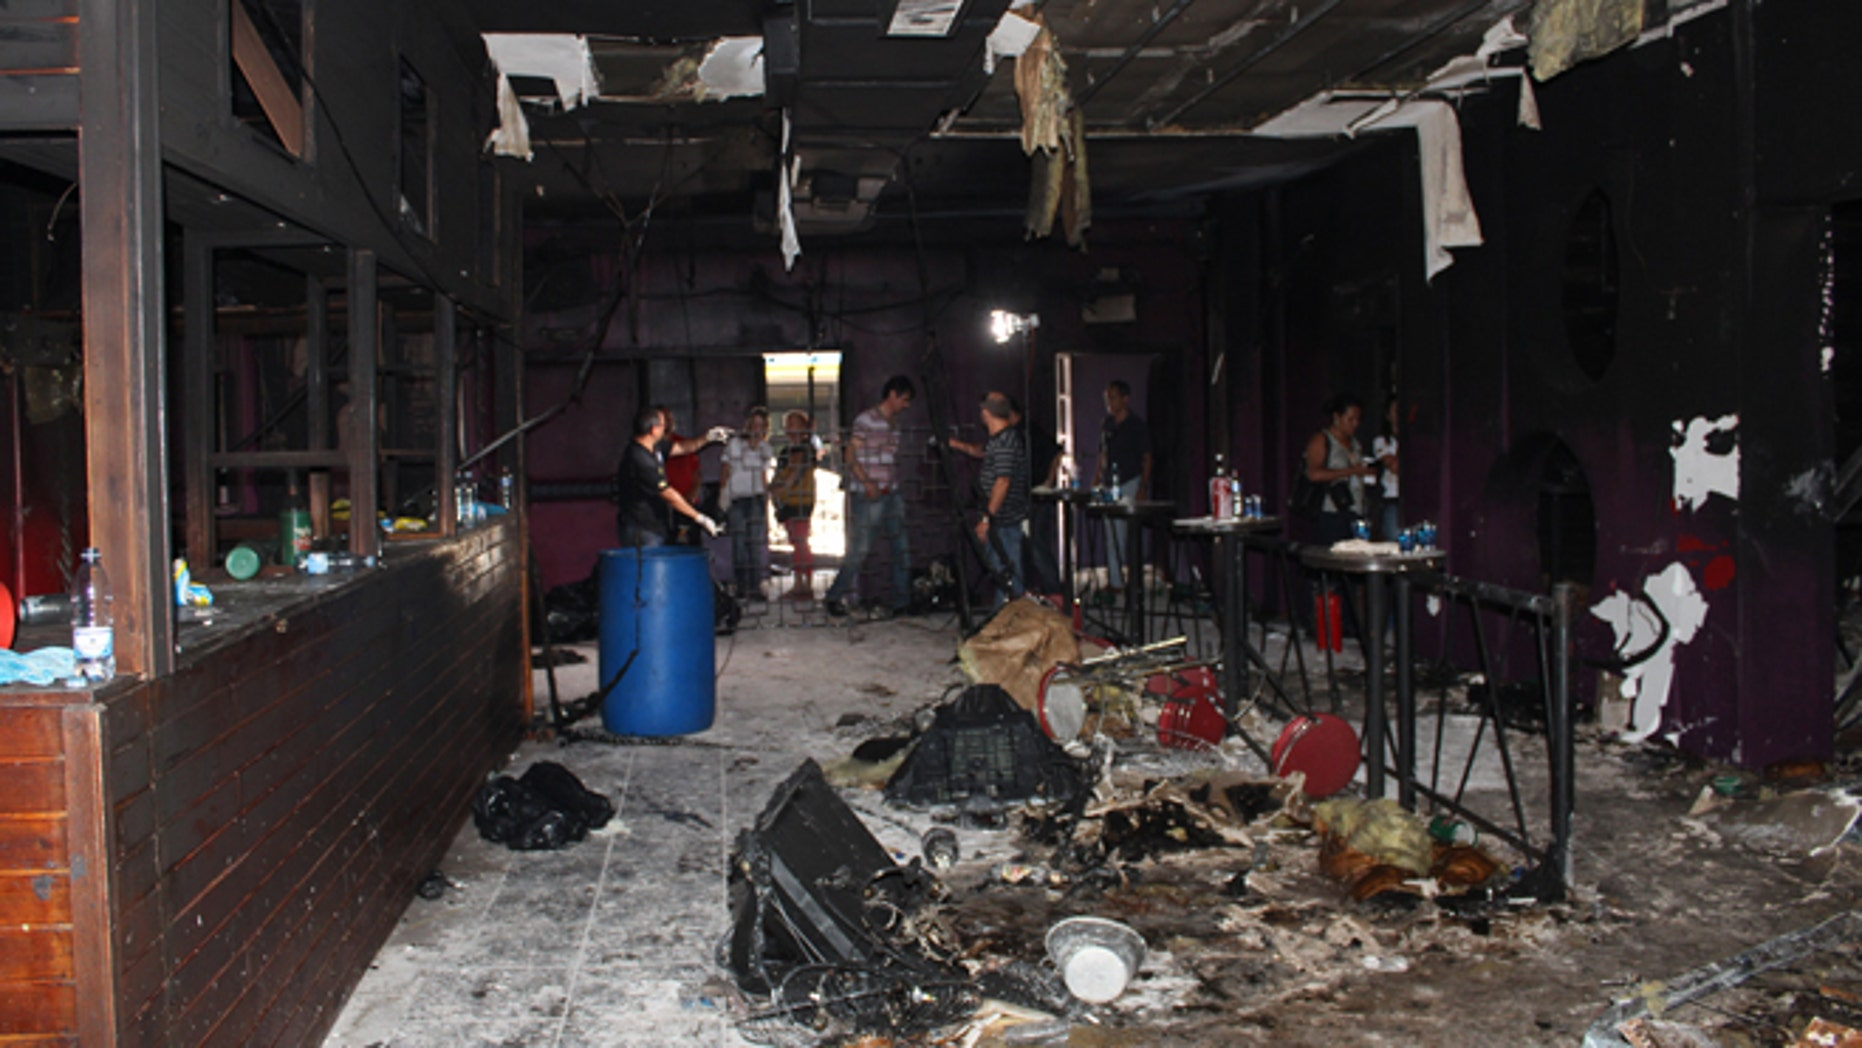 Jan. 29, 2012: This photo released by Policia Civil do Rio Grande do Sul, shows the inside of the Kiss nightclub  where a fire killed more than 230 people in Santa Maria city, Rio Grande do Sul state, Brazil. The blaze began at around 2:30 am local time on Sunday, during a performance by Gurizada Fandangueira, a country music band that had made the use of pyrotechnics a trademark of their shows.